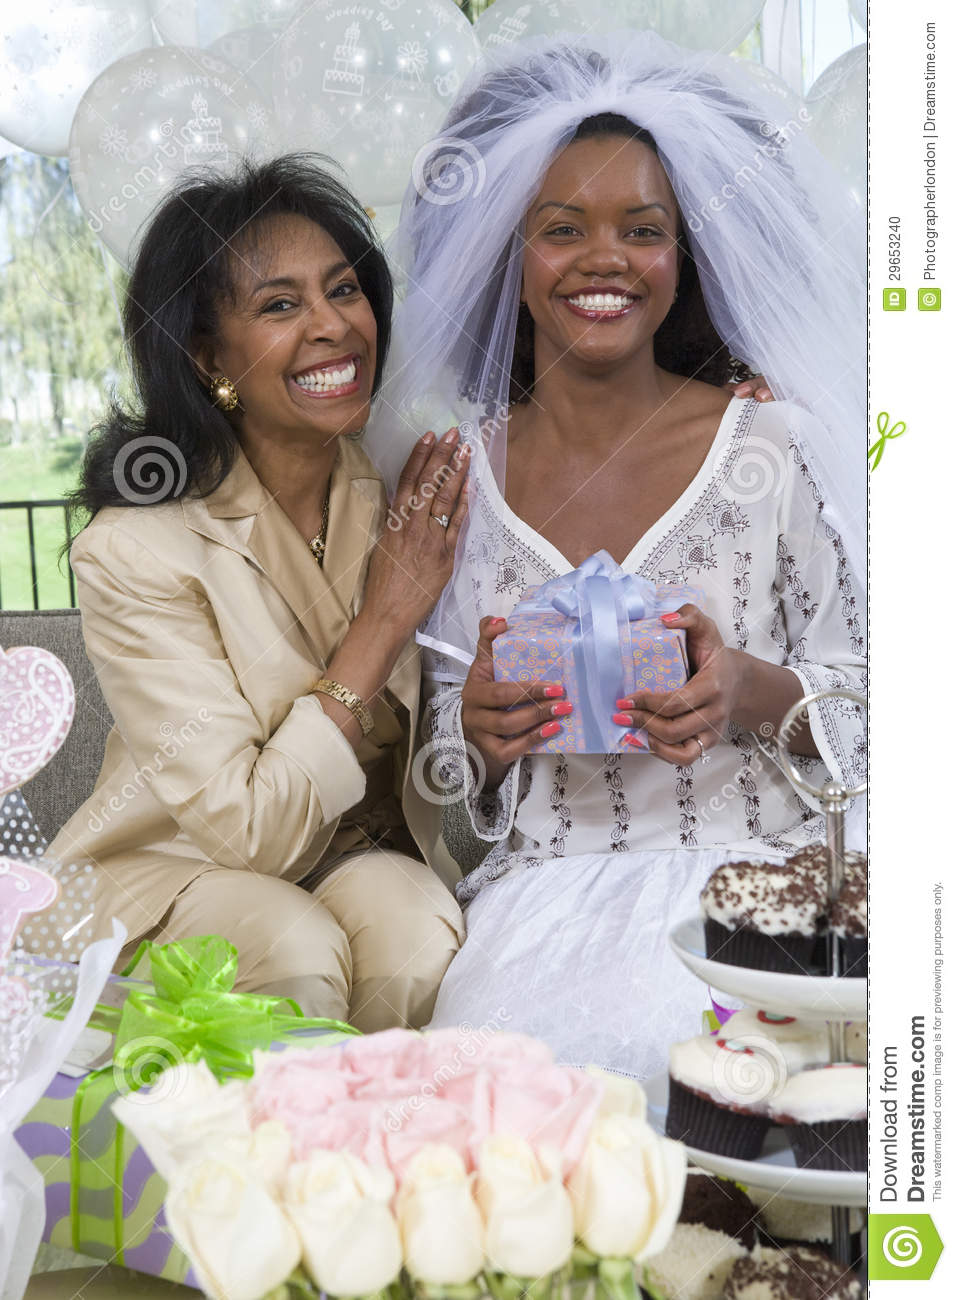 Bride And Her Mother At Hen Party